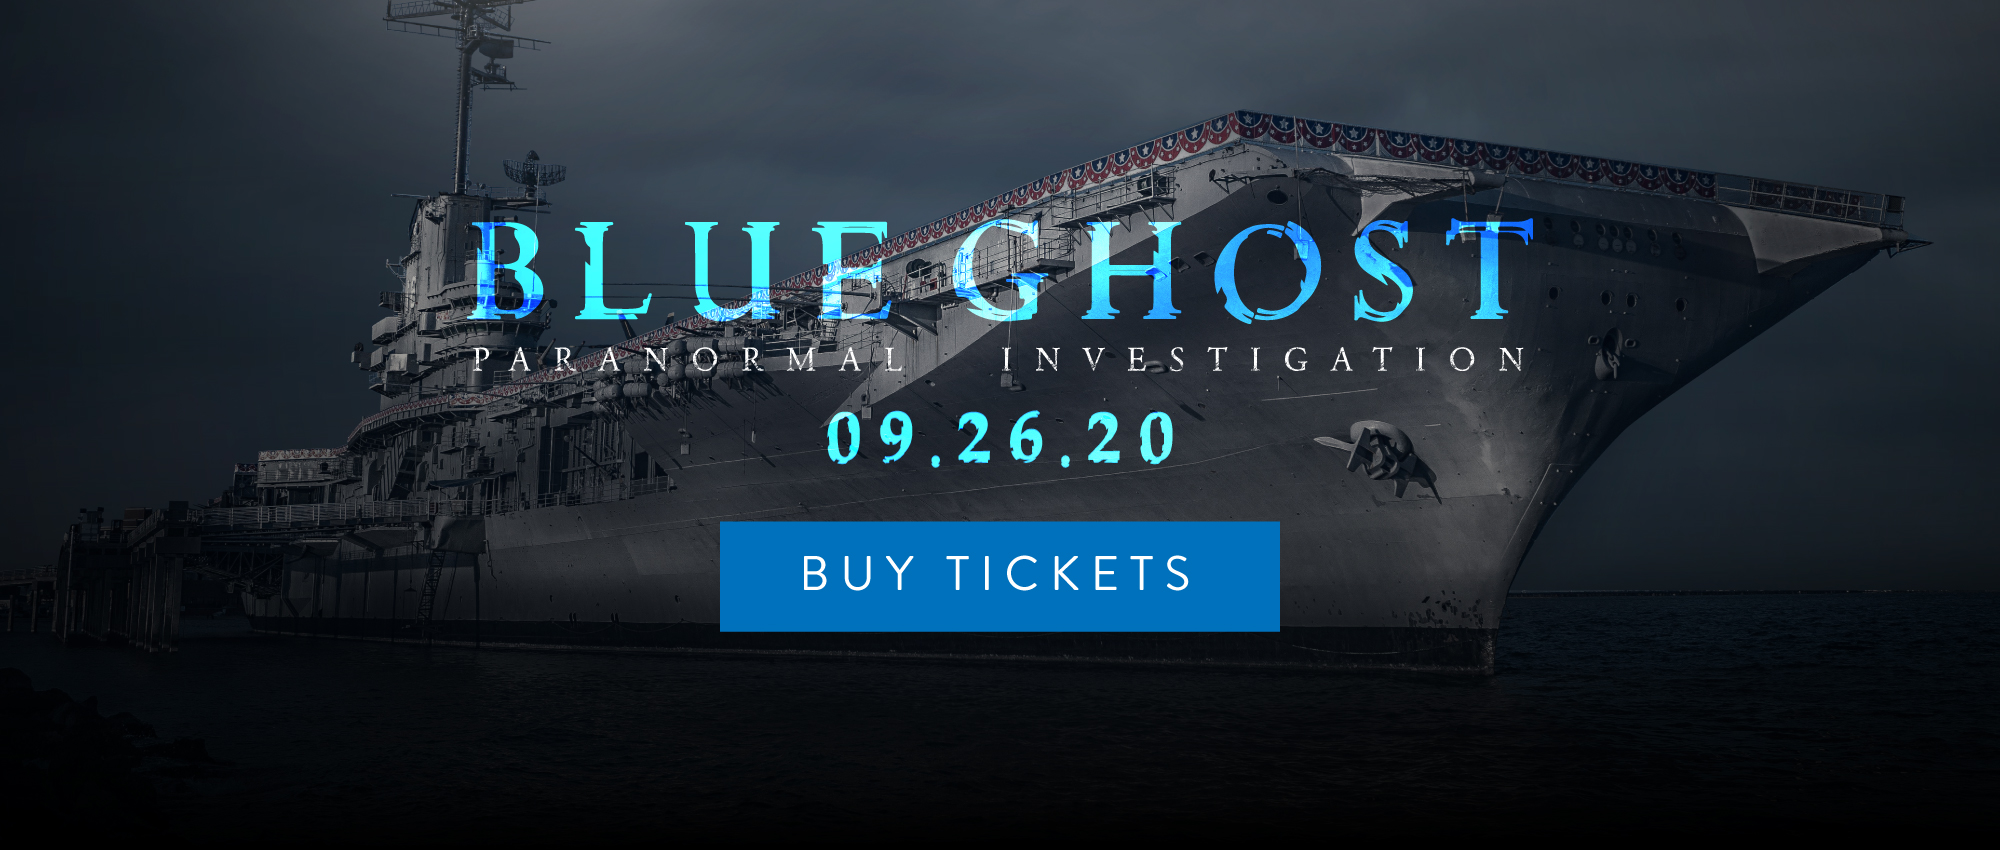 Blue Ghost Paranormal